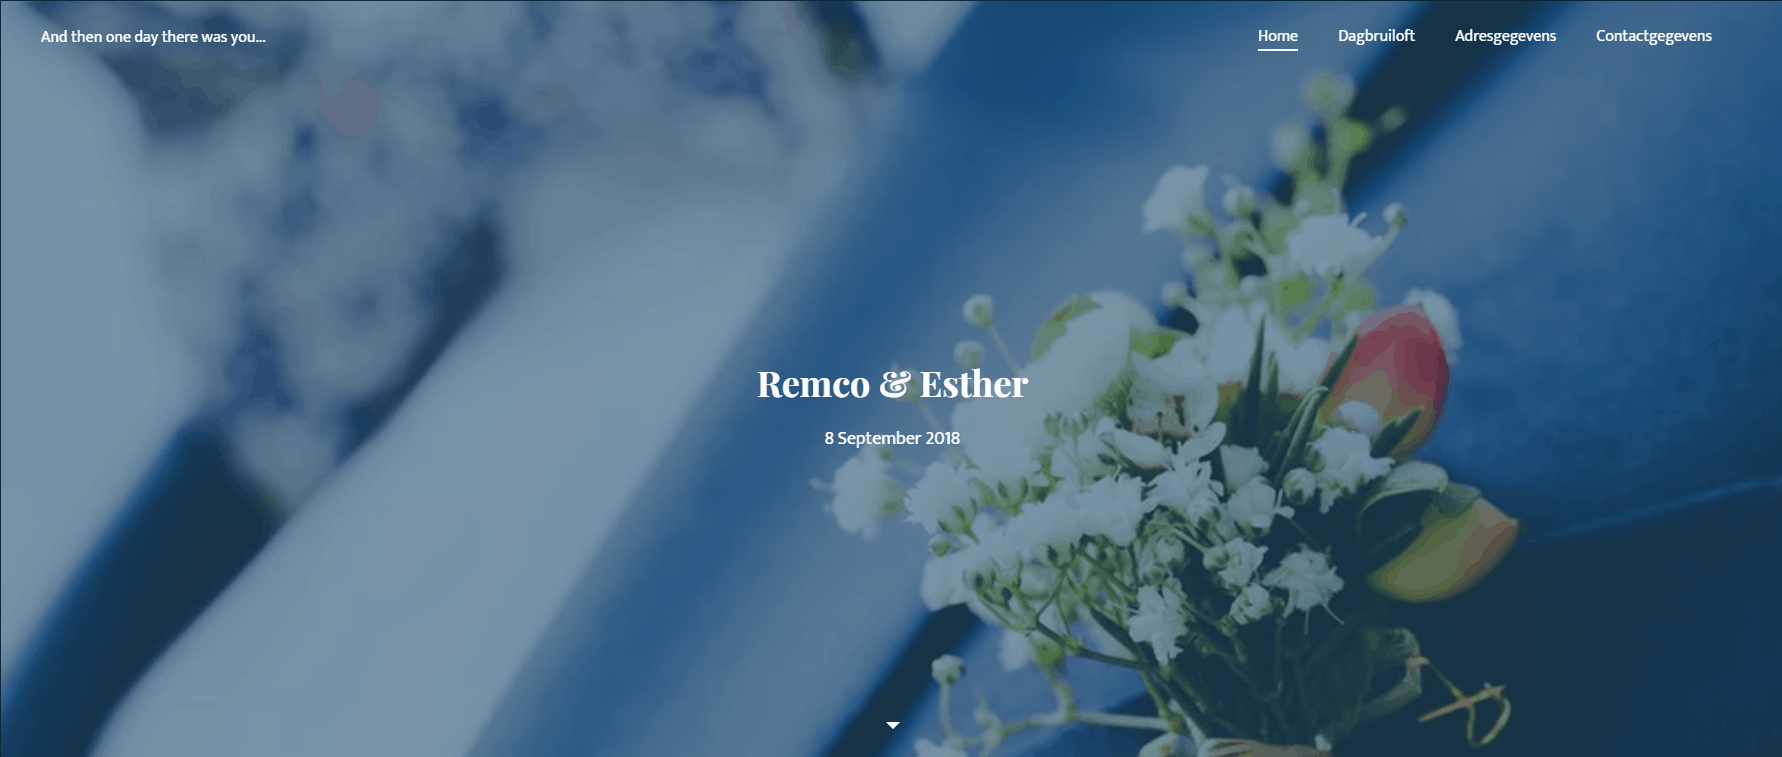 Jimdo wedding announcement example site